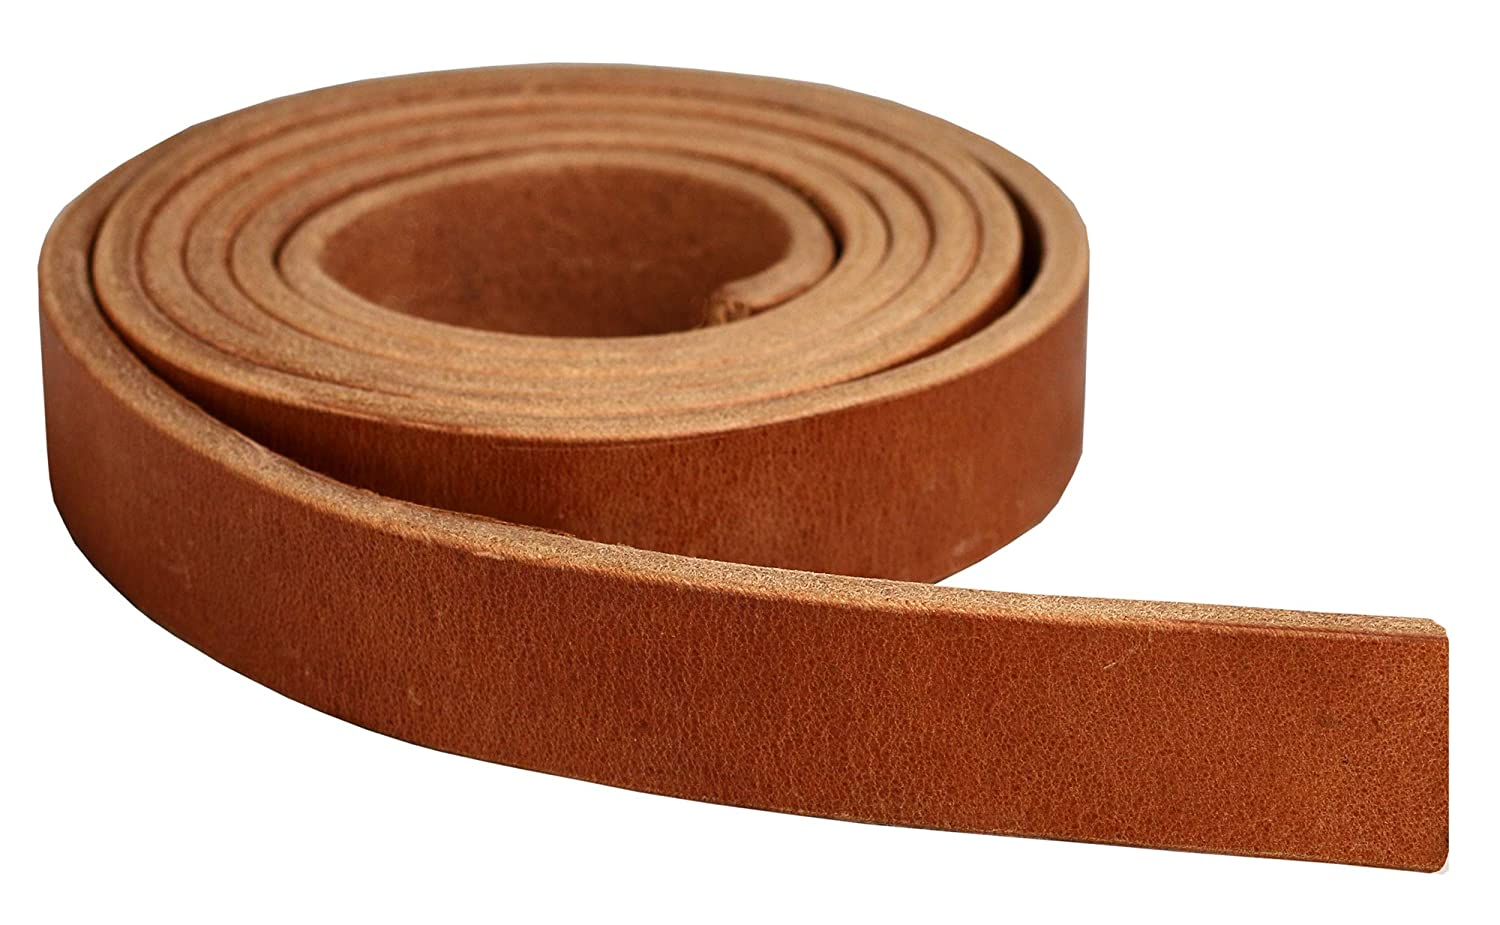 1.5x 84 Natural Russet Color 100/% Leather Strip Great for Tack Repair 13//64 or 5.2 MM Thickness Fully Finished /& Leveled Premium Hermann Oak Harness Leather Blank Strap 13 Ounce Weight